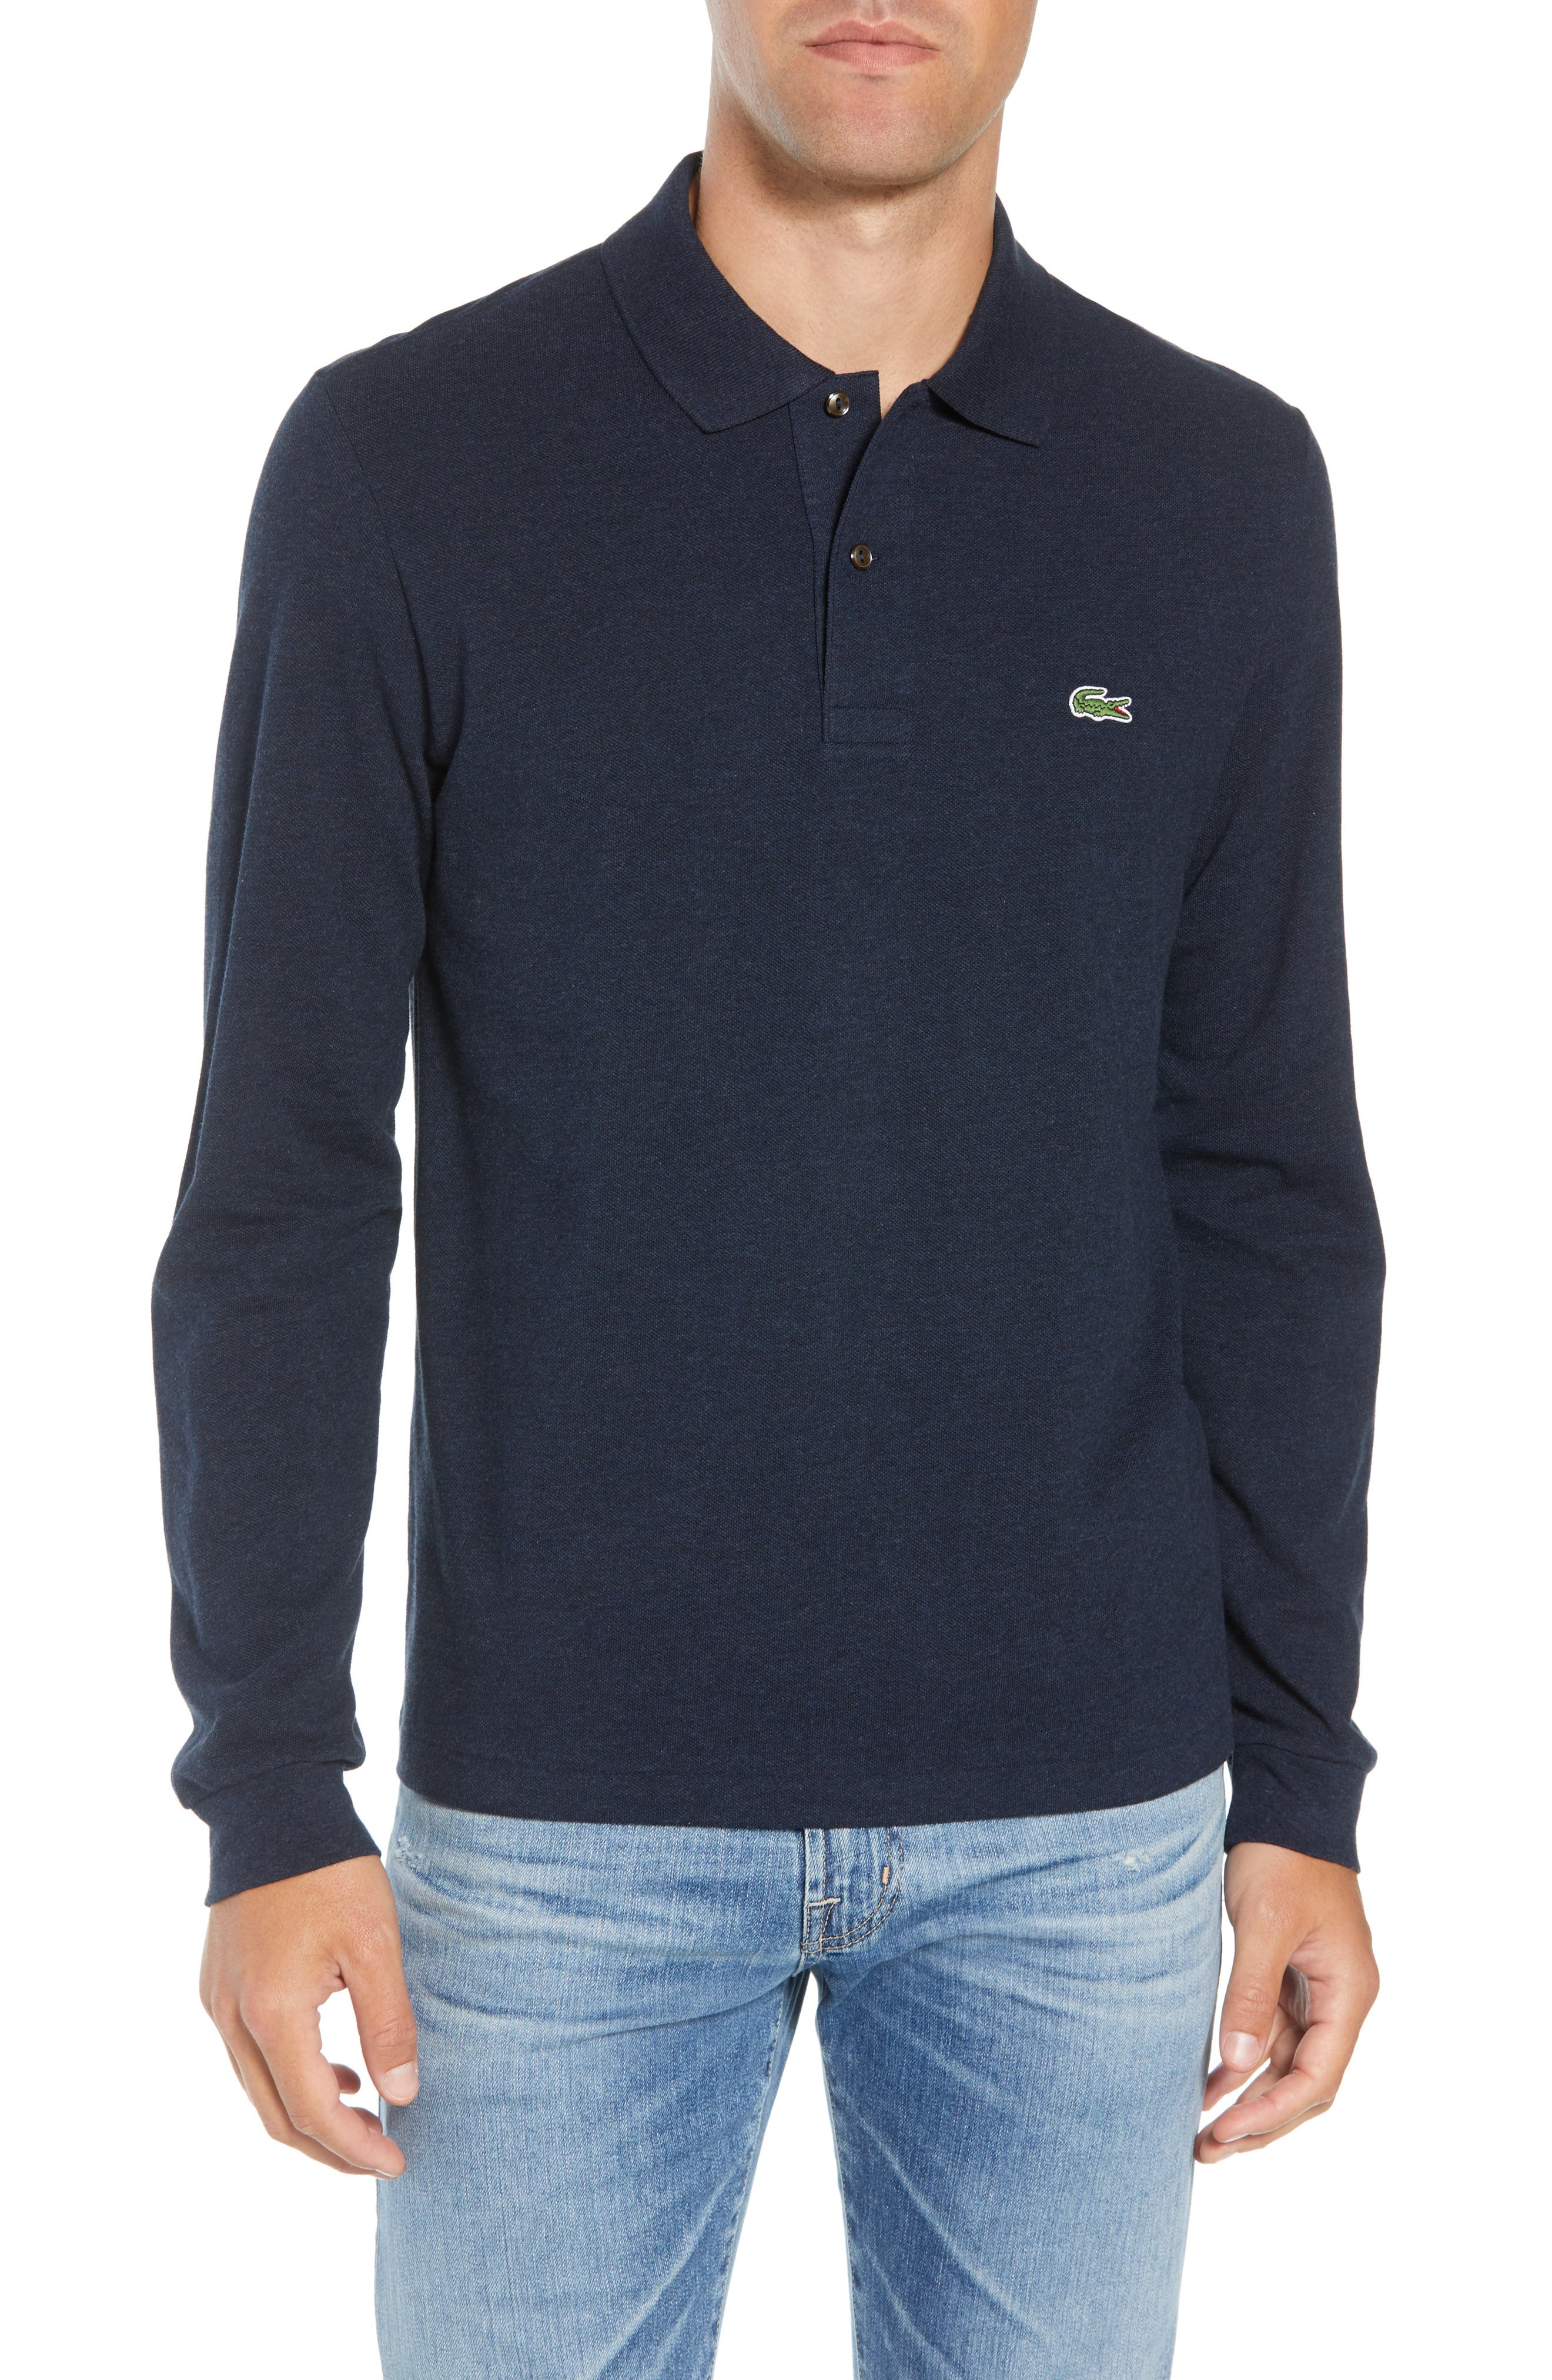 LACOSTE Long Sleeve Pique Polo in Eclipse Blue Chine